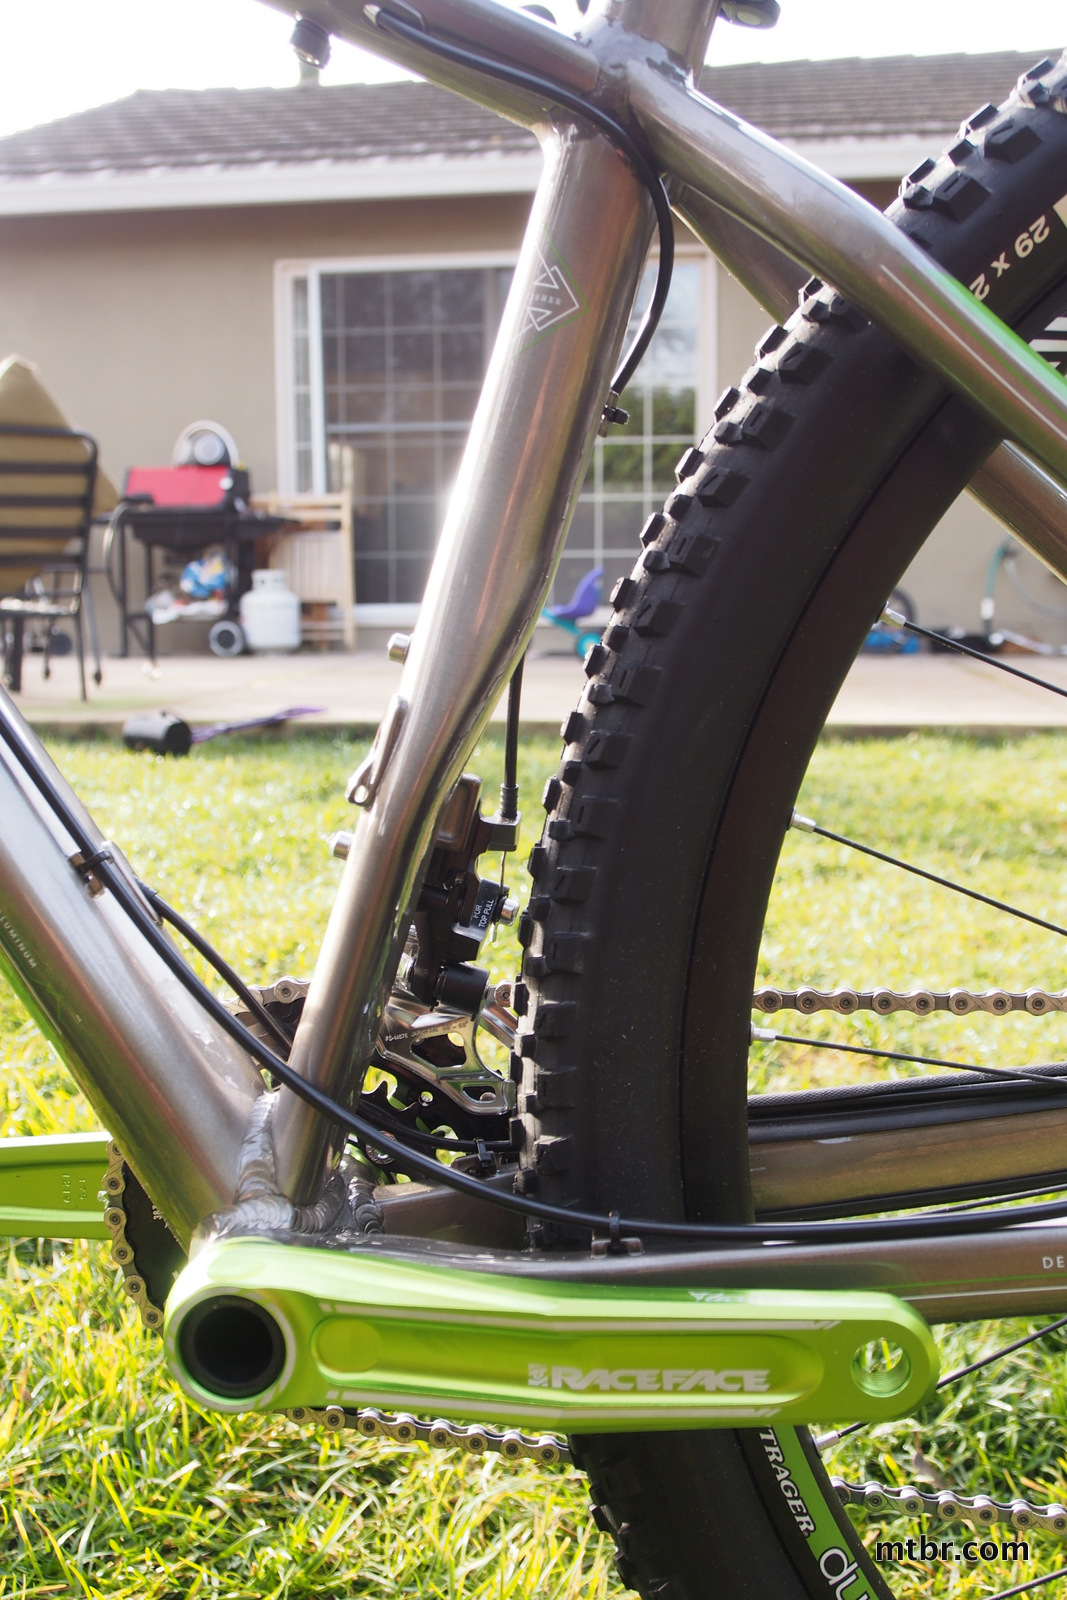 Trek Stache 8 Rear Tire Clearance